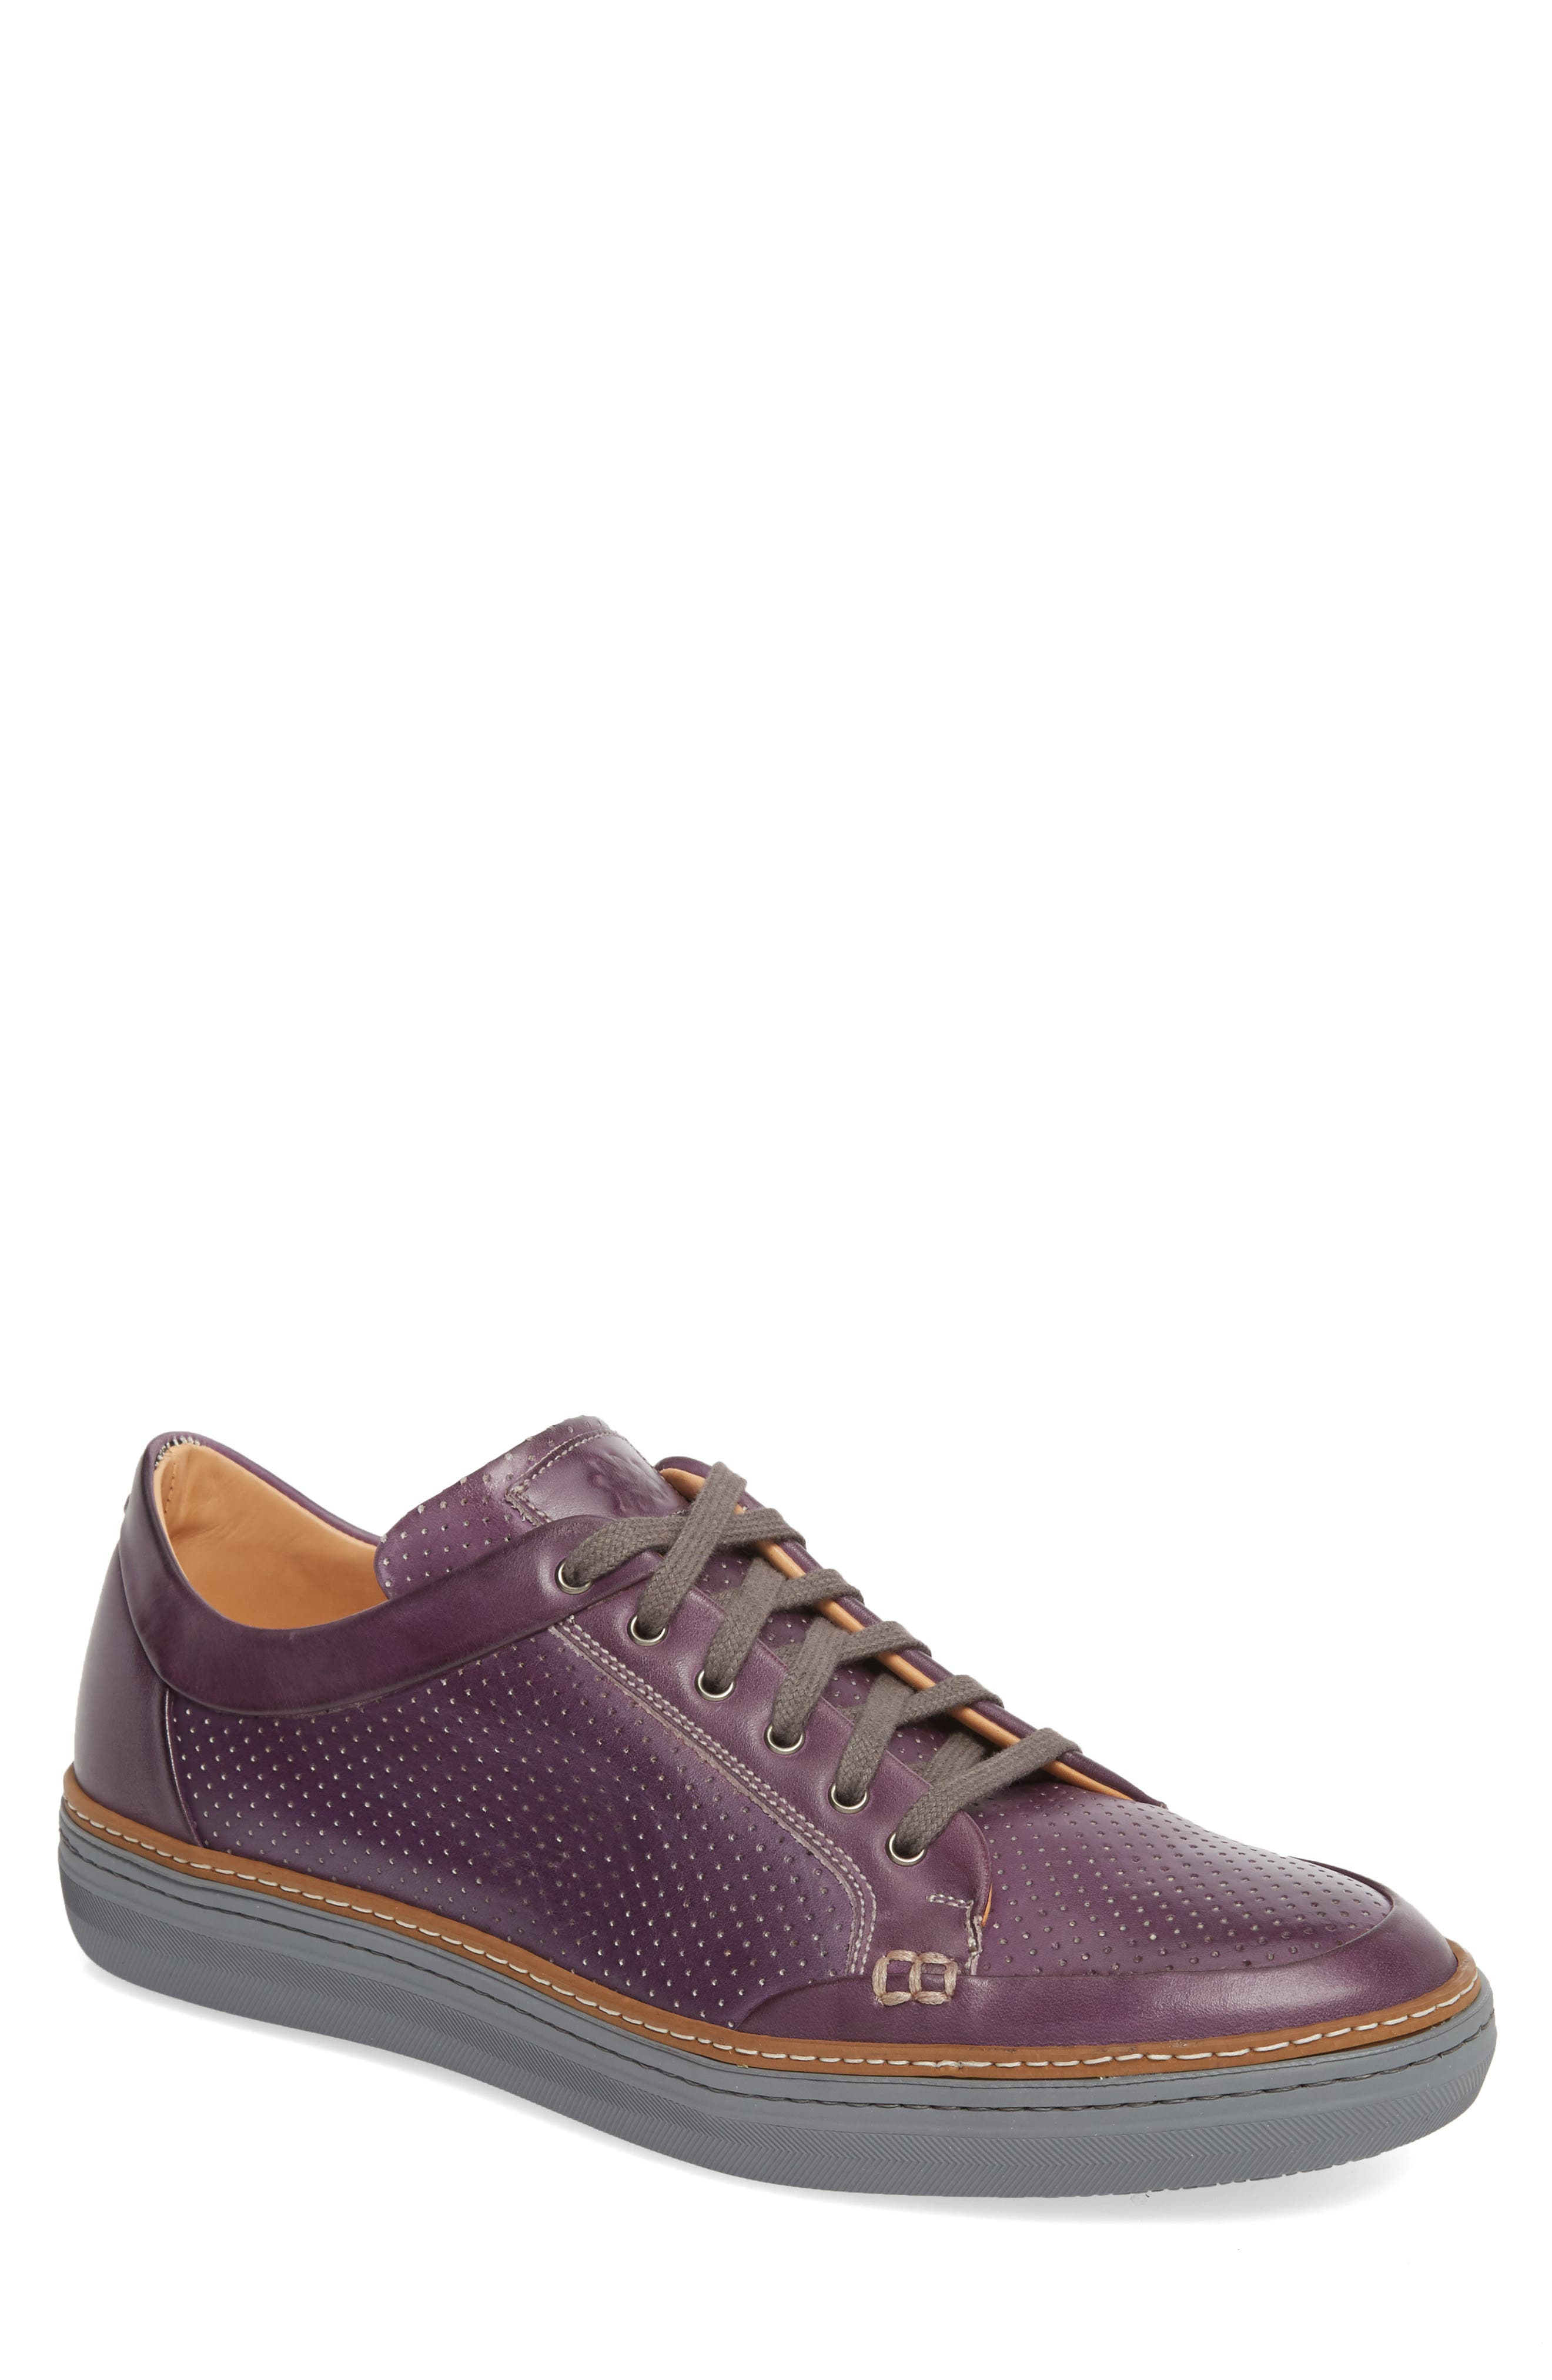 Ceres Perforated Low Top Sneaker,                             Main thumbnail 1, color,                             Purple Leather